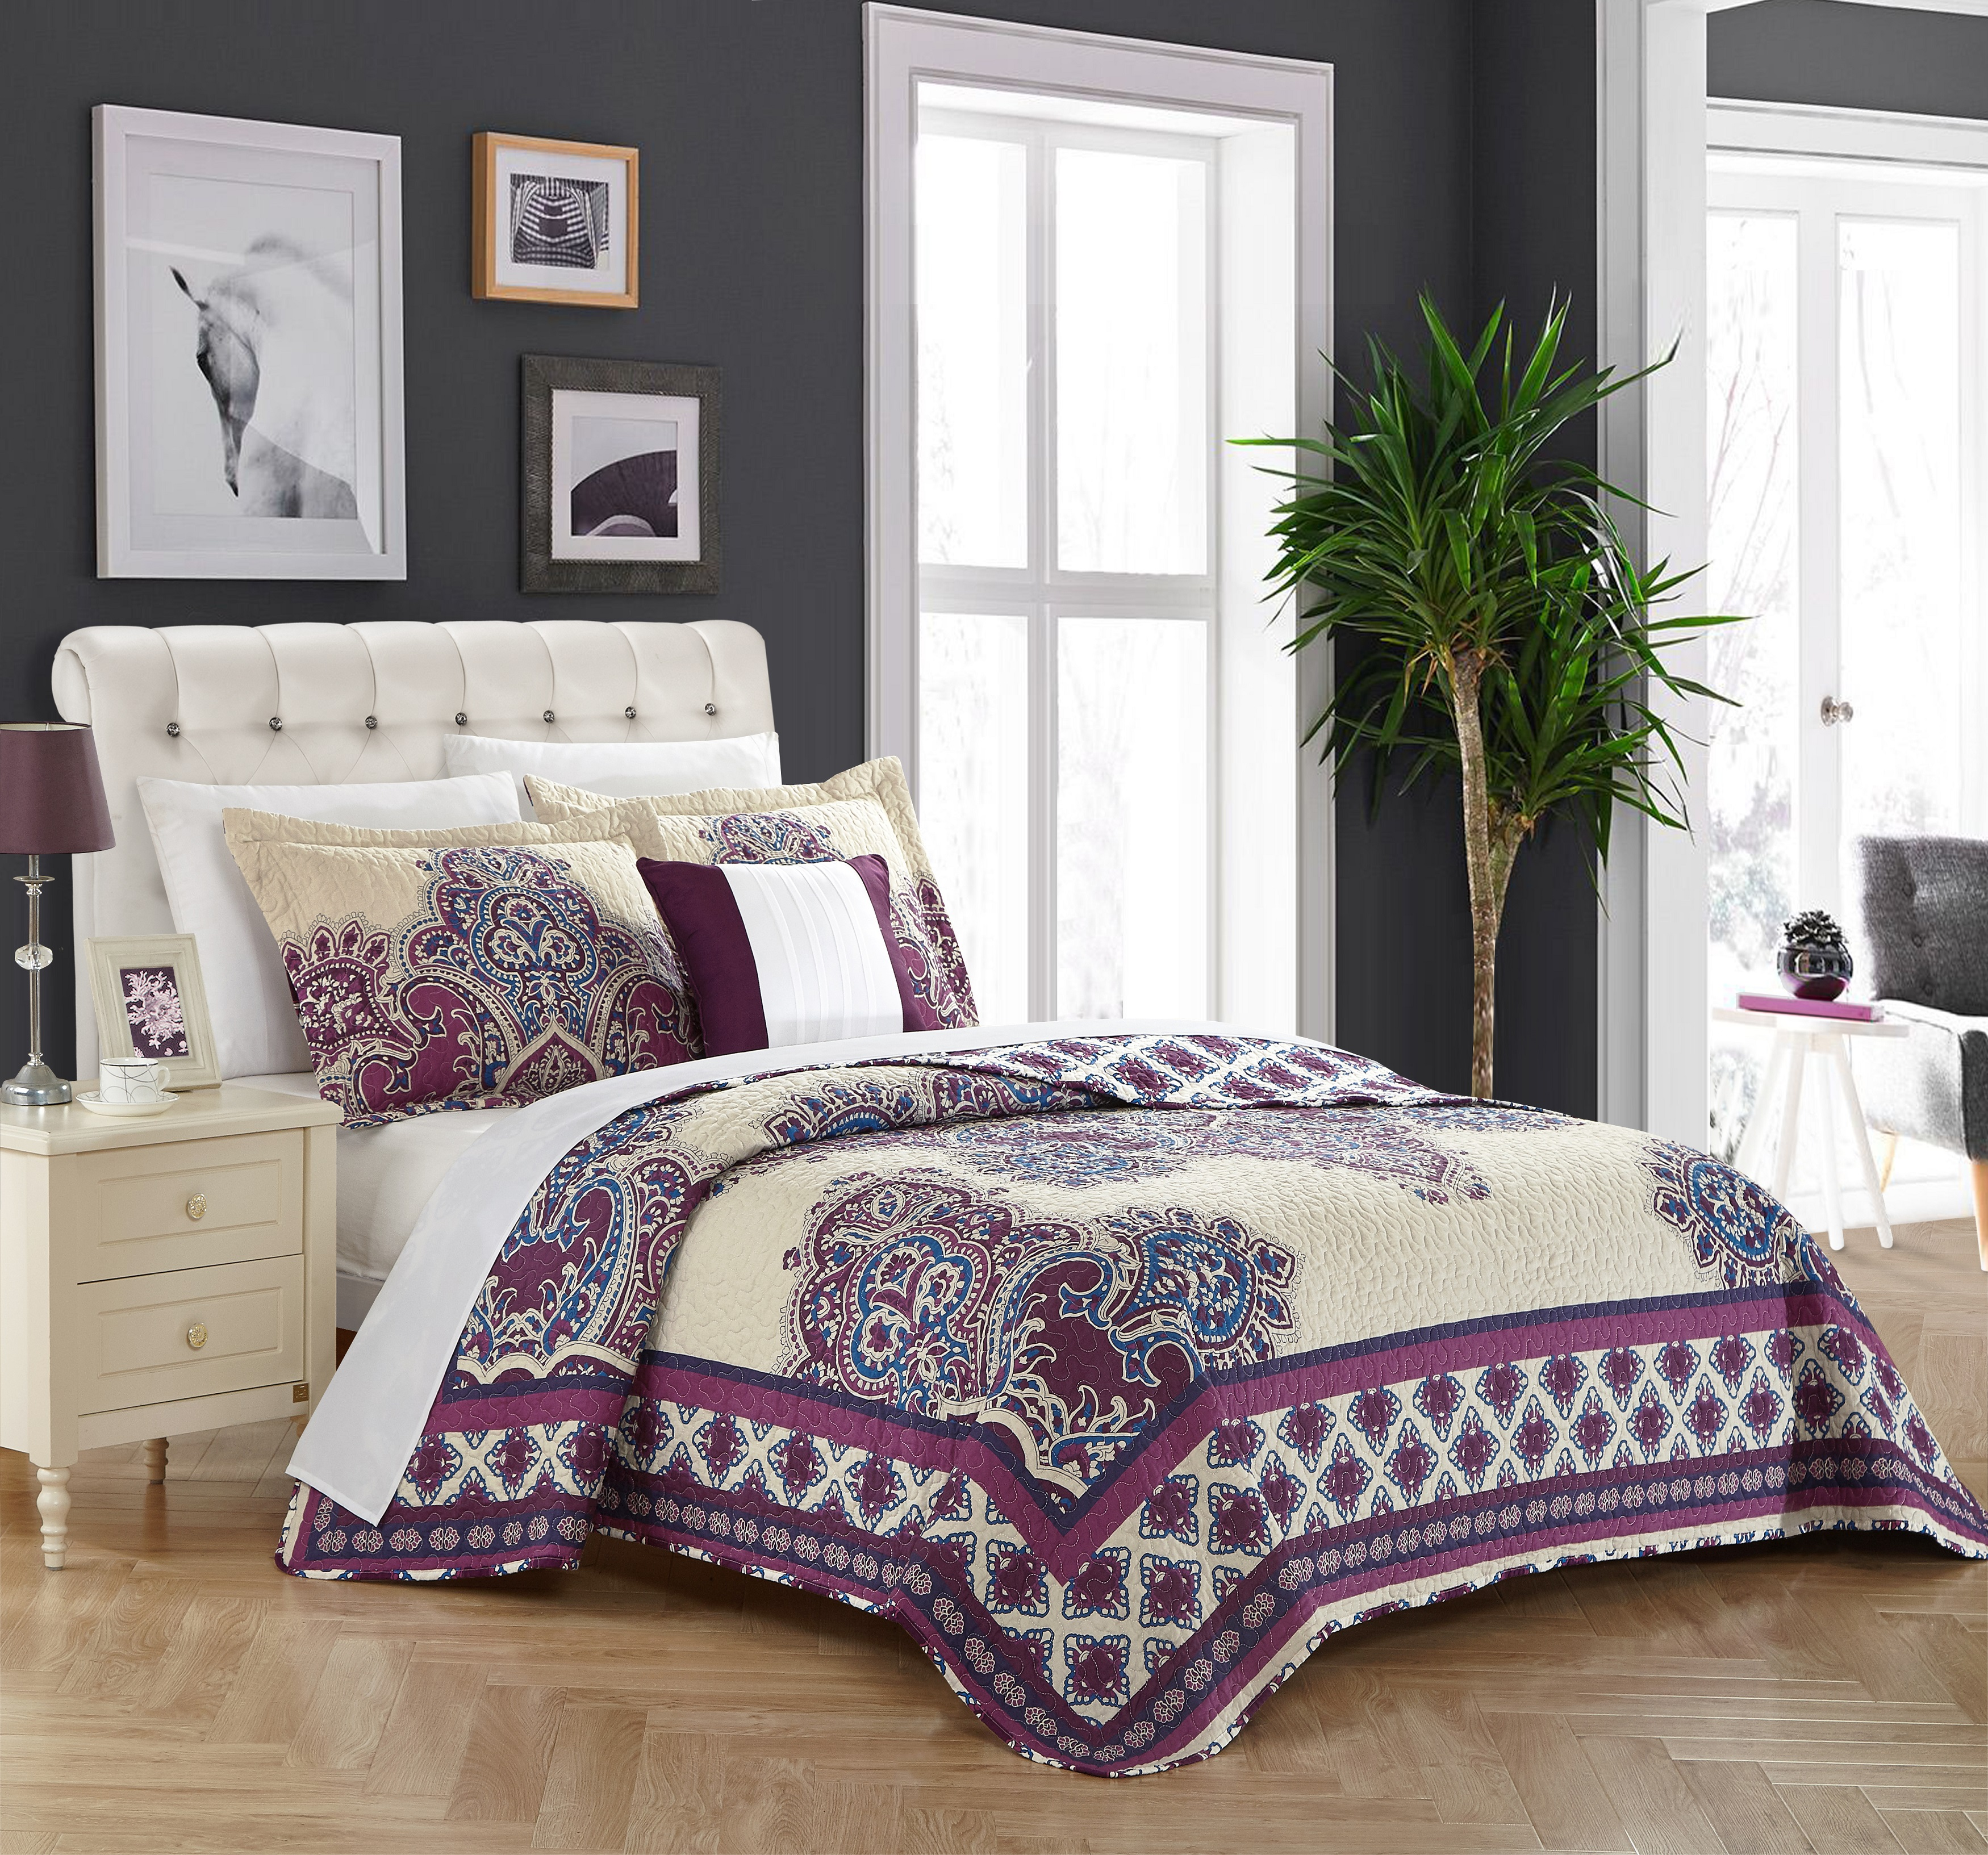 Chic Home 4-Piece Muraqqa 100% Cotton 200 Thread Count Extra Large Panel Framed Vintage Boho Printed REVERSIBLE Quilt Set Purple